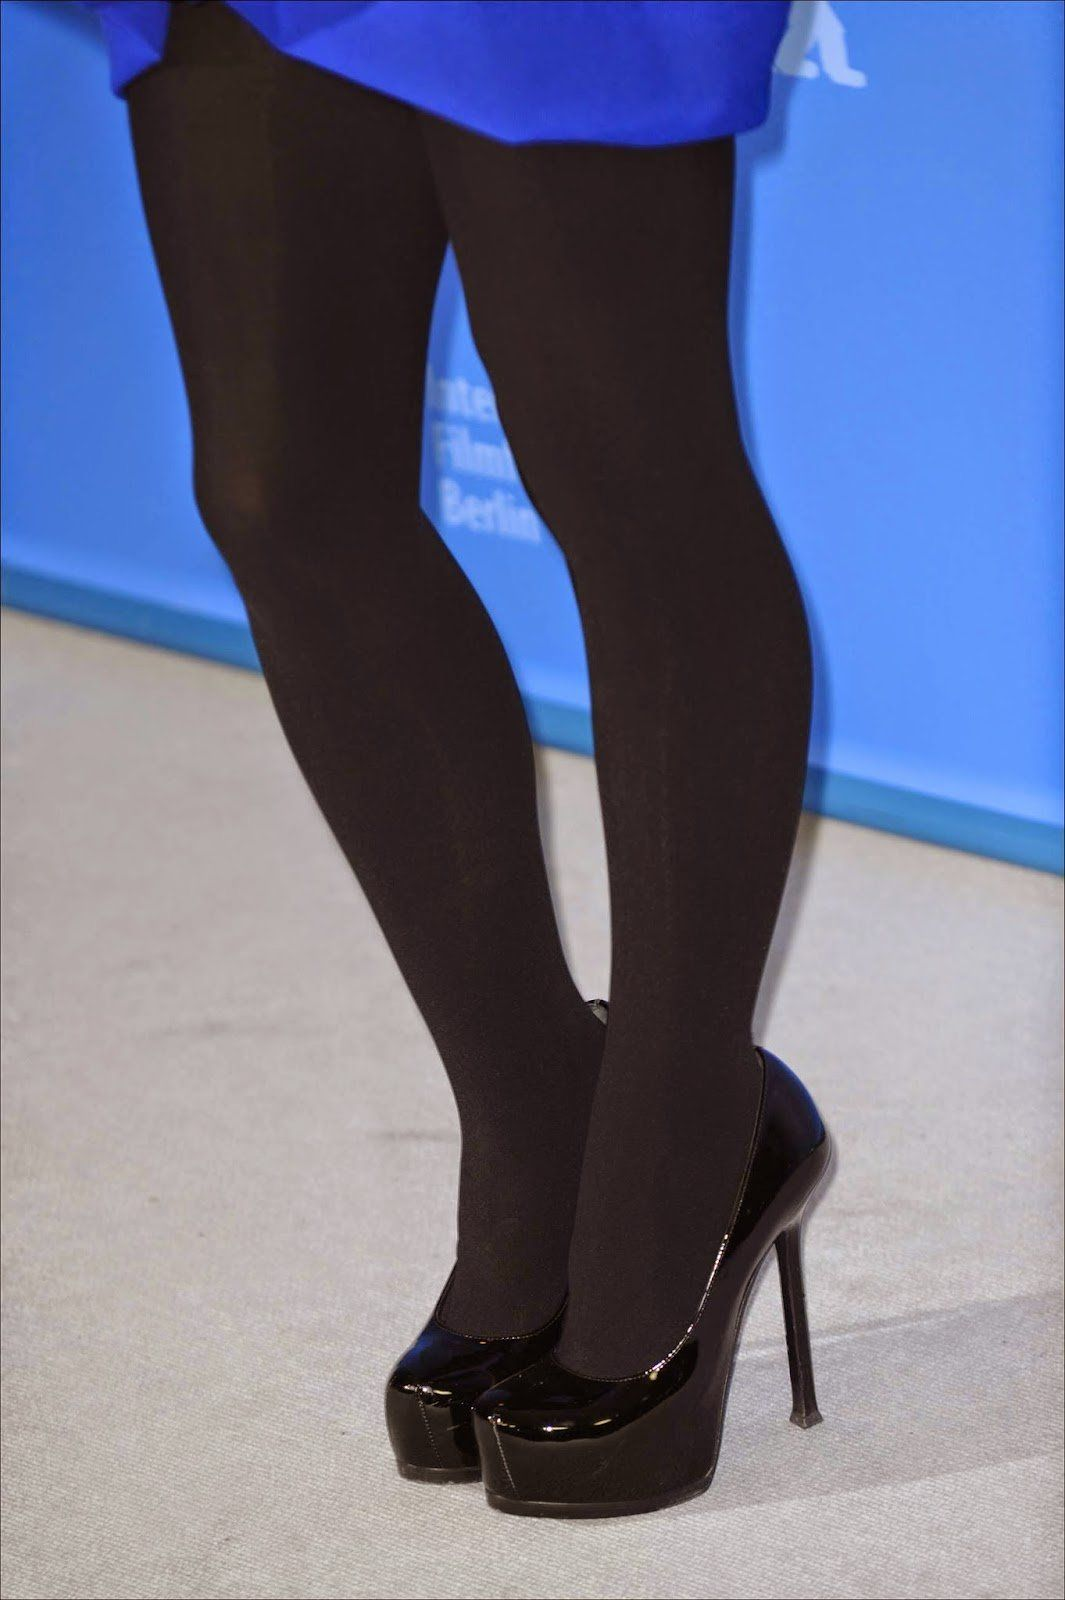 Merlot reccomend Christina rici in pantyhose